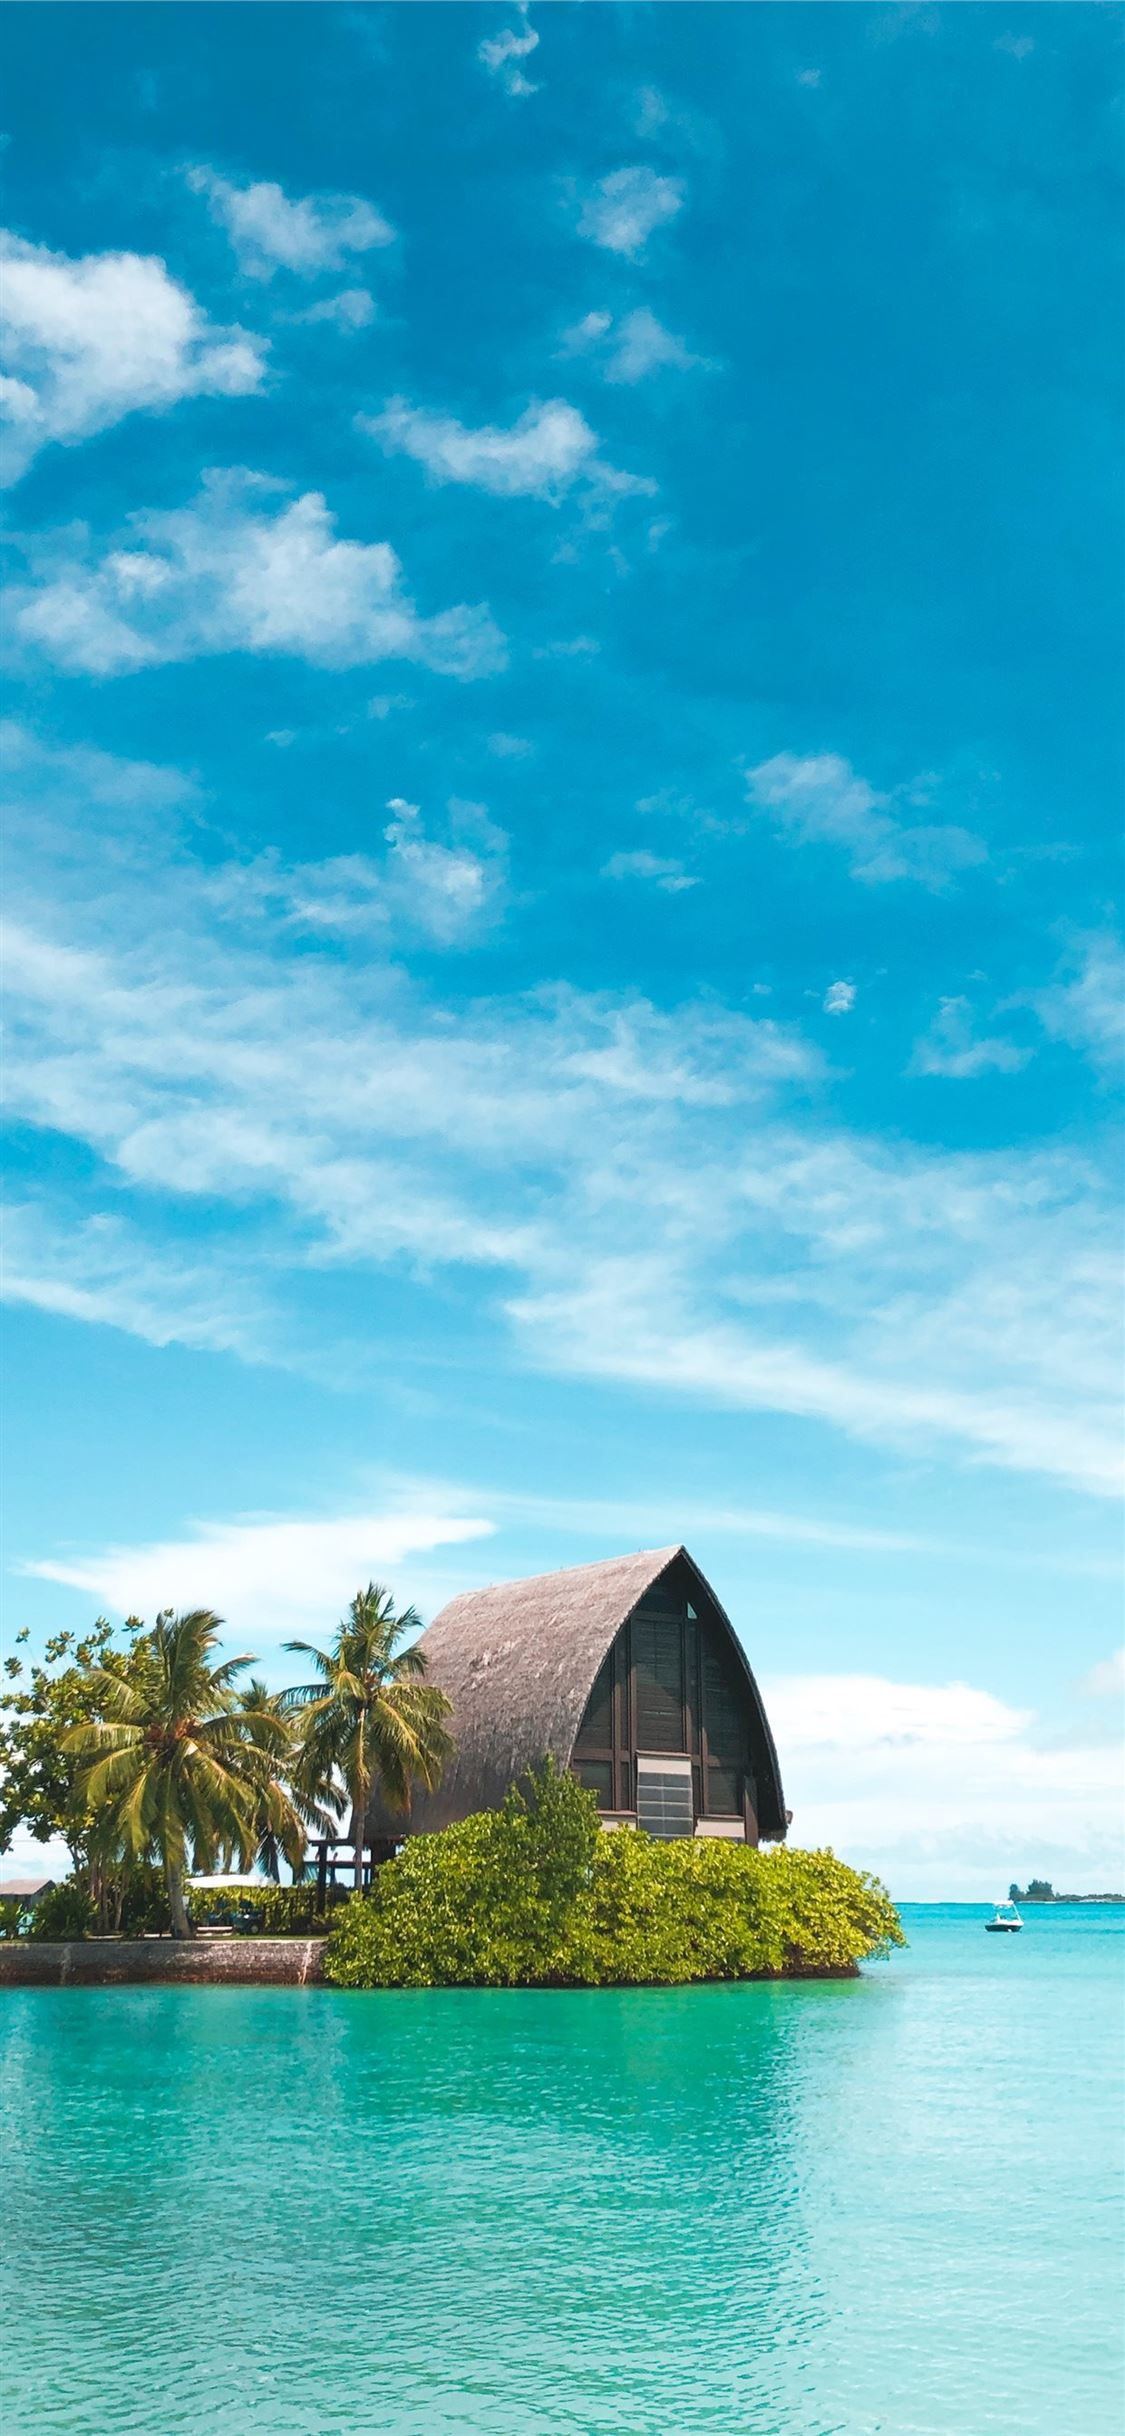 brown hut near coconut palm trees under blue sky iPhone 11